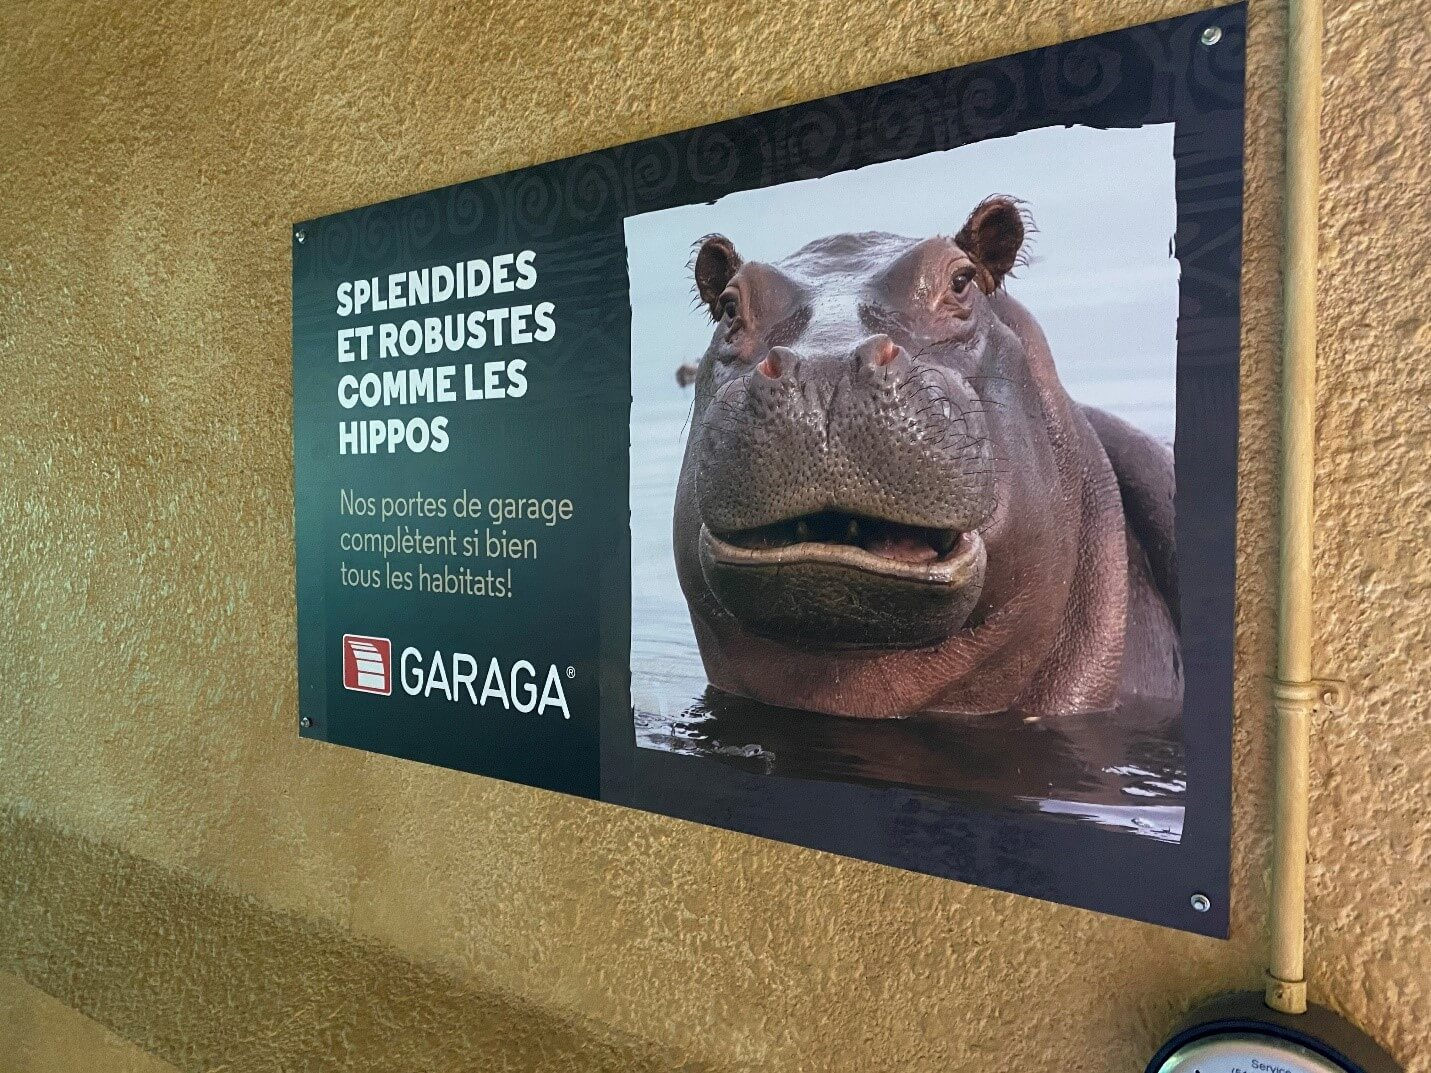 Garaga is proud to contribute to the well‑being of the Granby Zoo's hippos with its panoramic garage doors